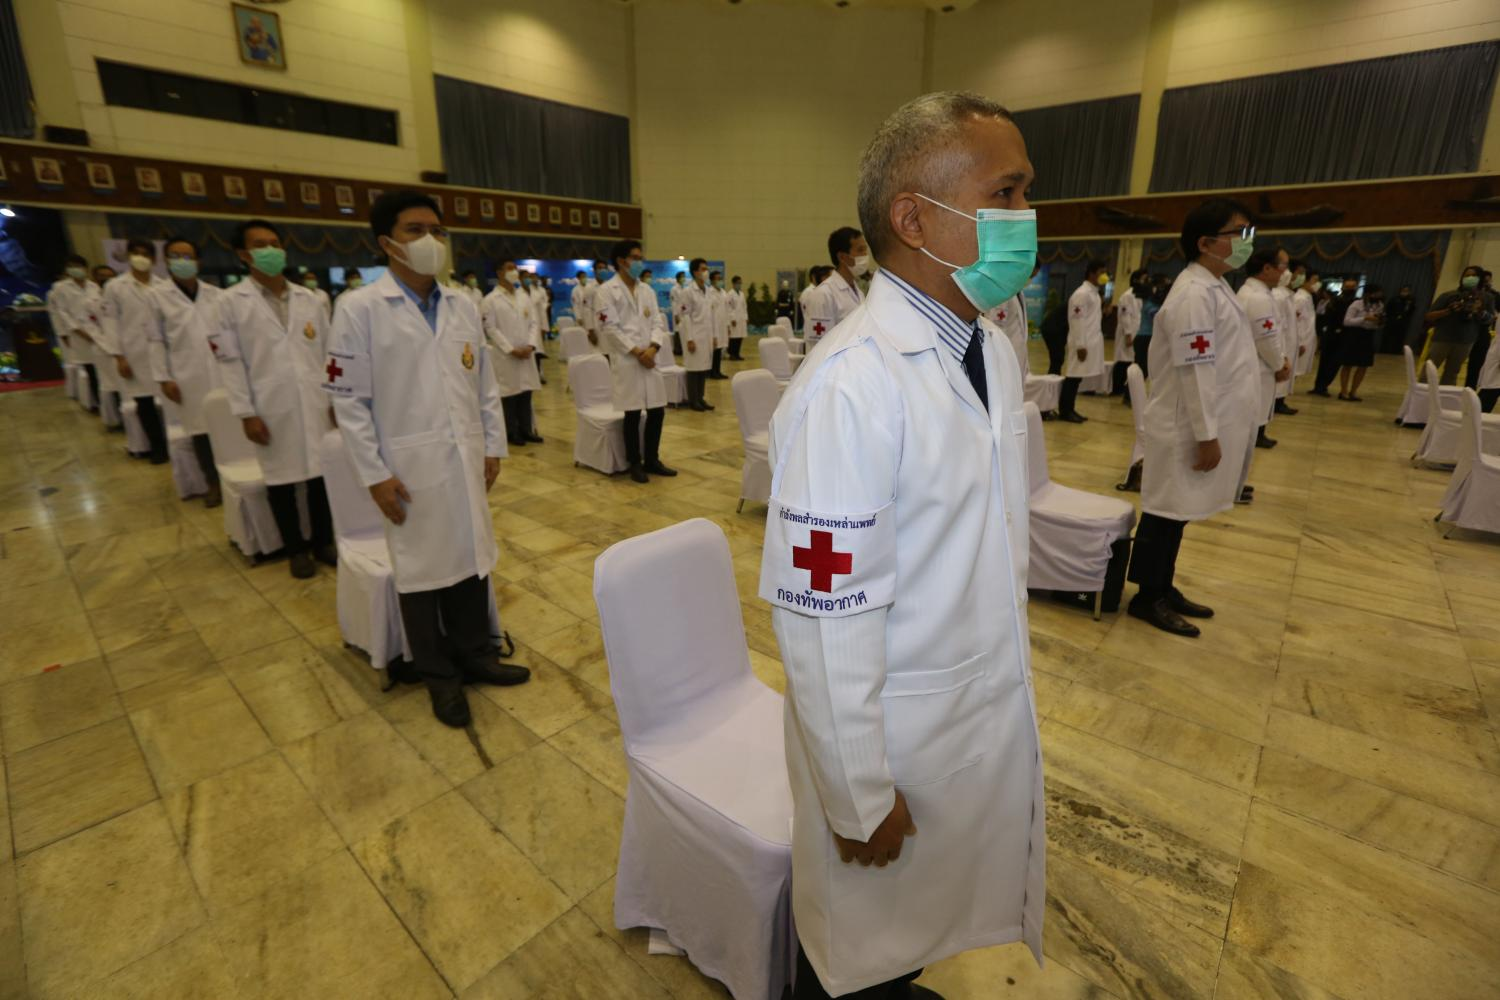 Fifty former military doctors rise as they reenlist in the Royal Thai Air Force to help fight the Covid-19 pandemic amid a rising number of cases. (Photo by Varuth Hirunyatheb)